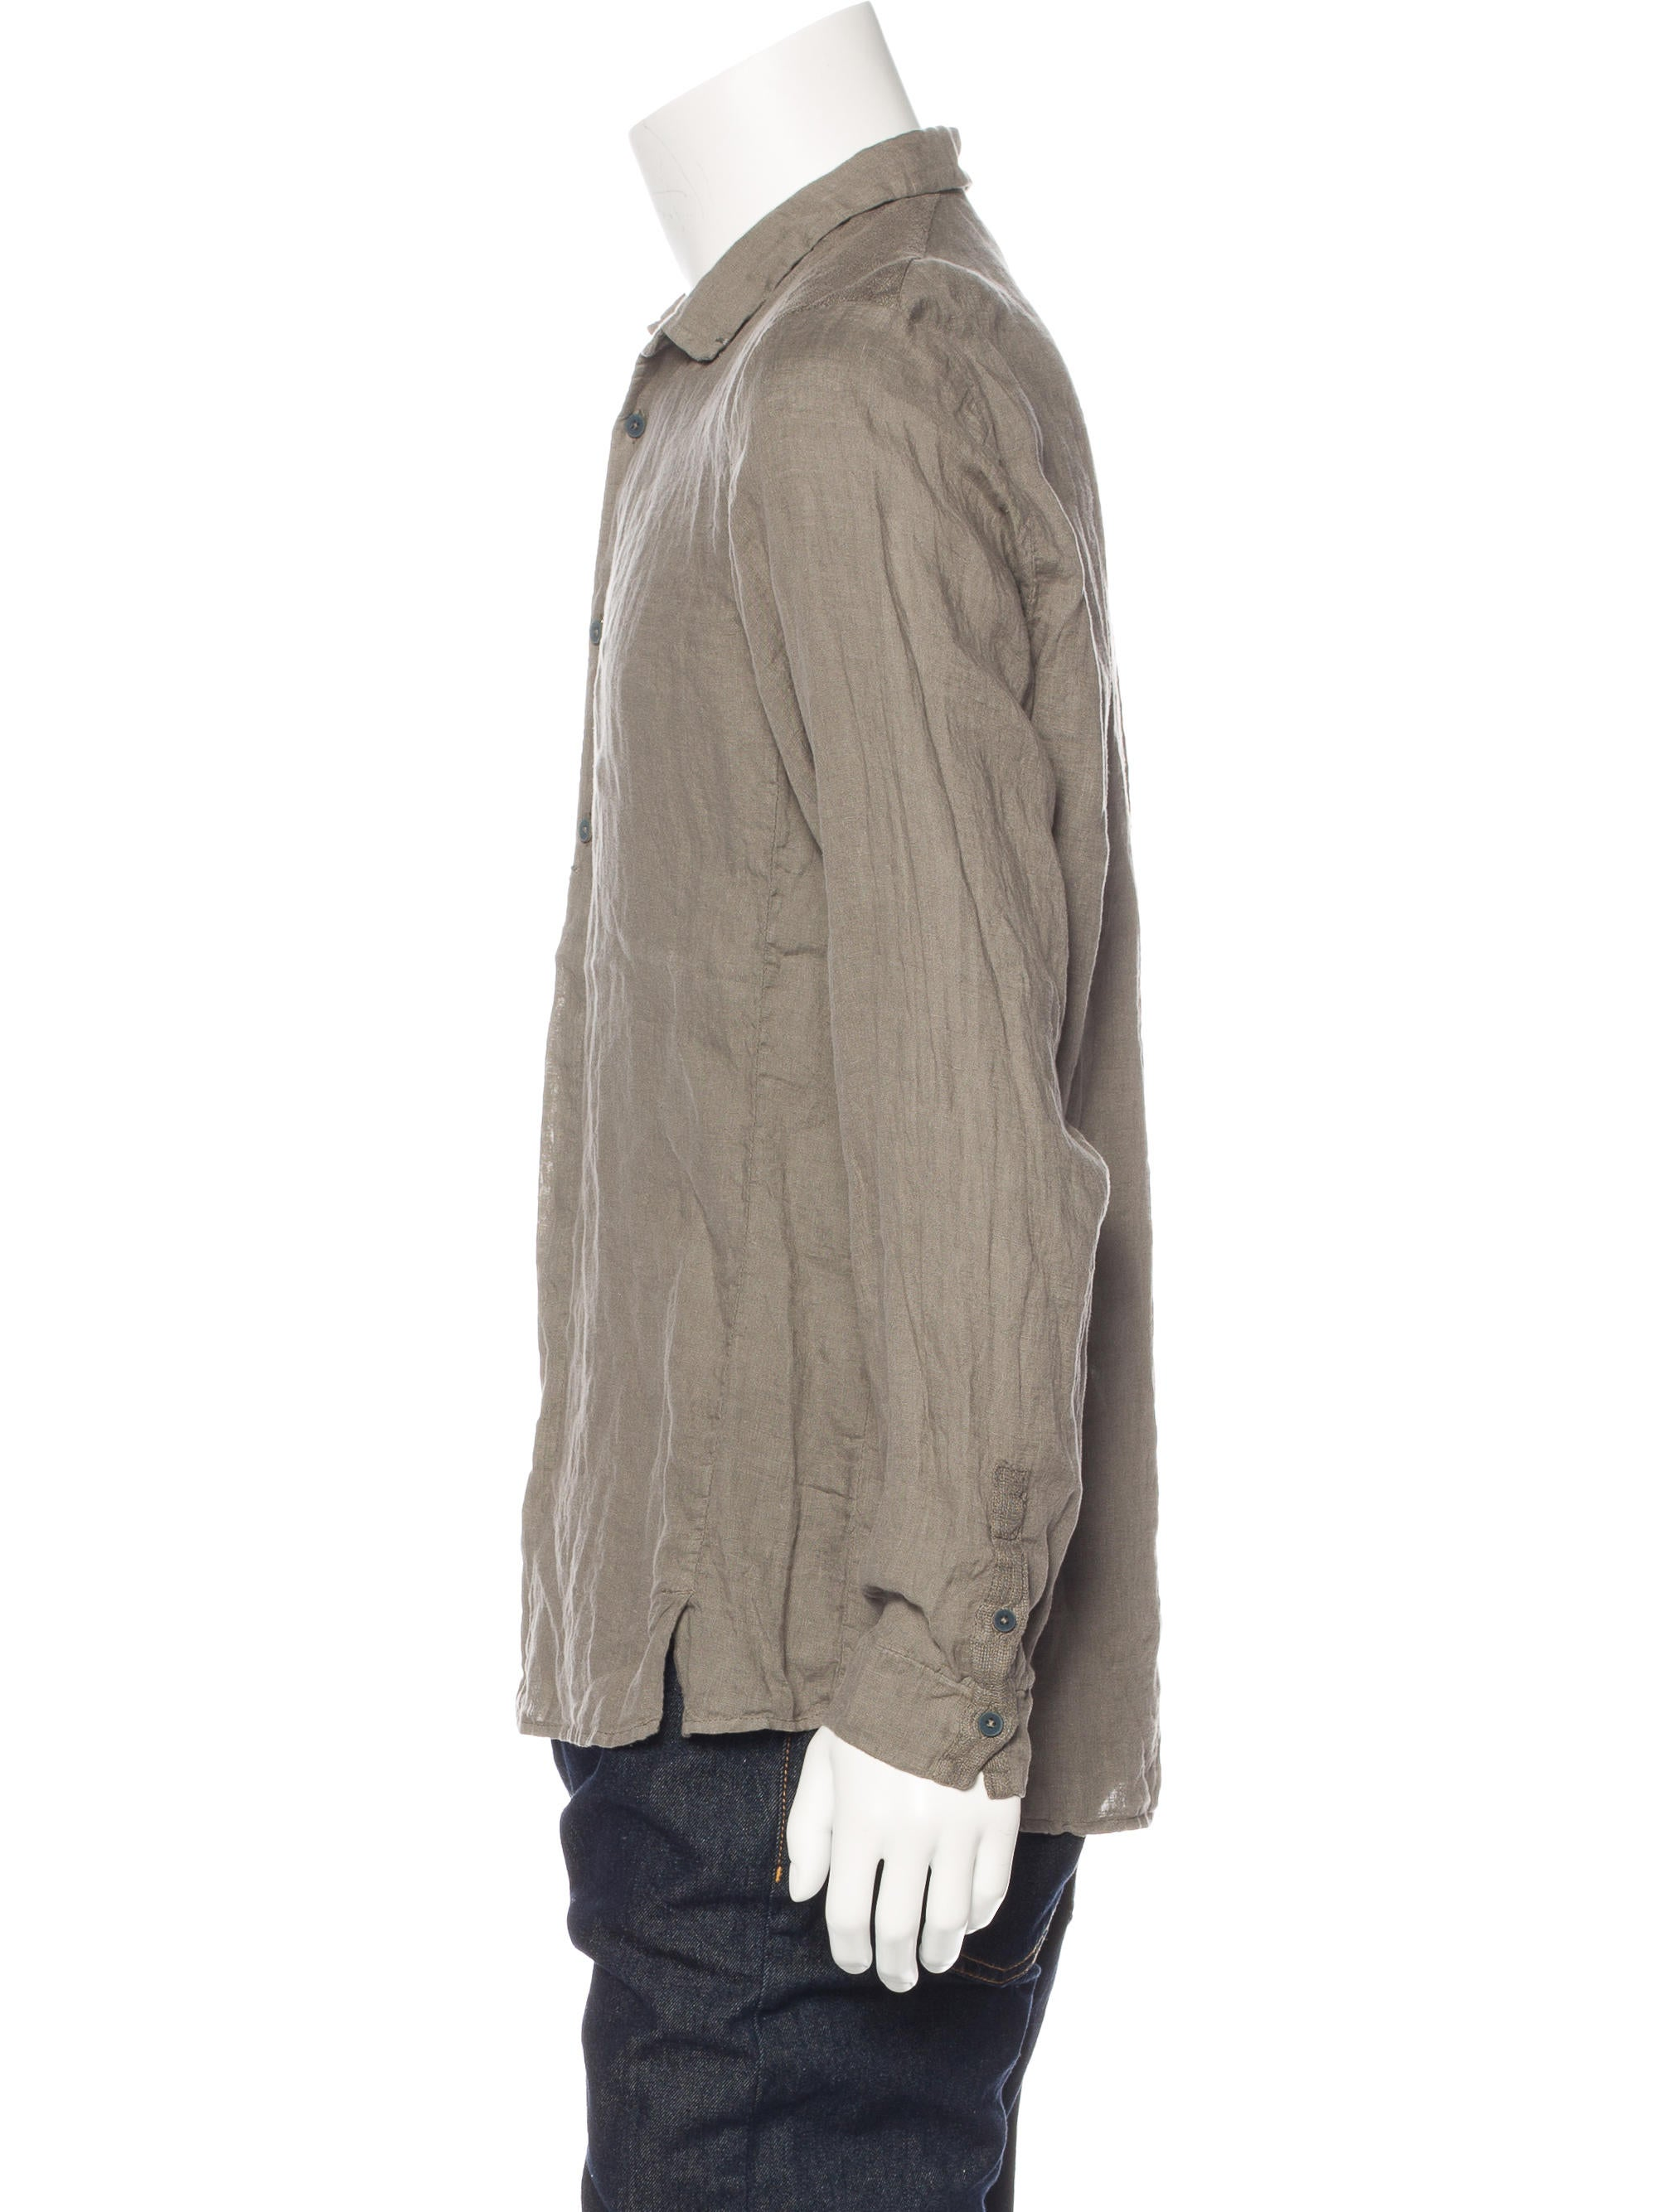 Transit linen woven shirt w tags clothing wt120064 Woven t shirt tags